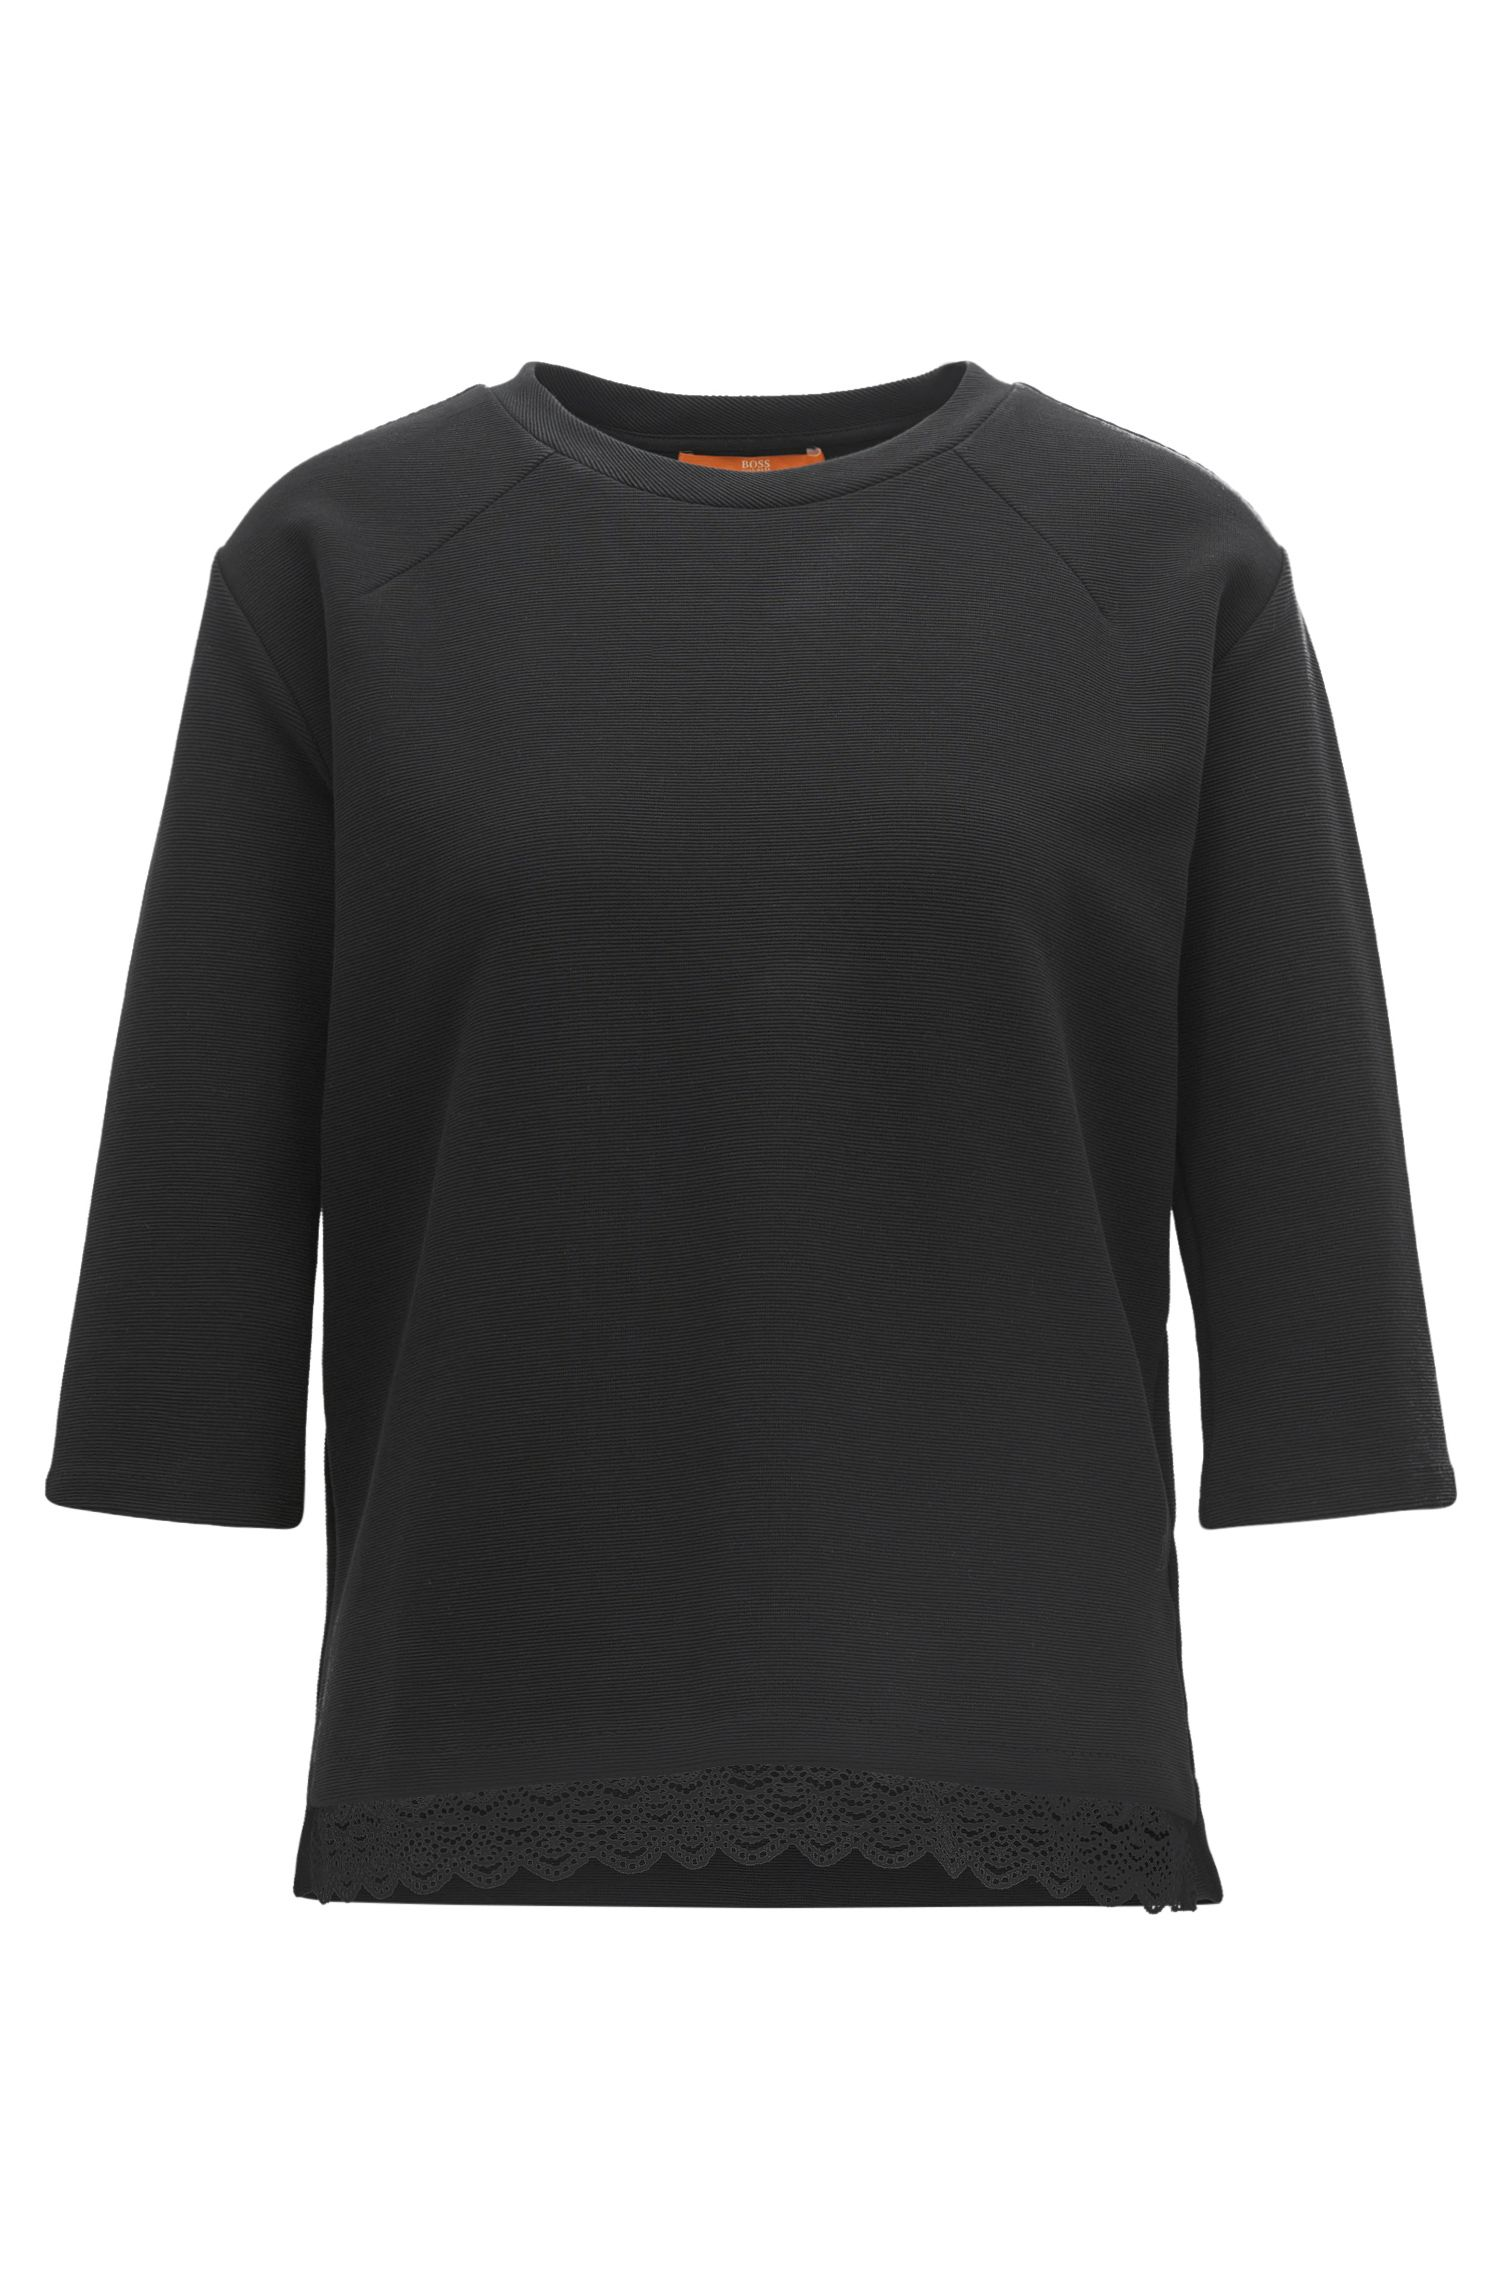 Ottoman jersey top with raglan sleeves and lace hem